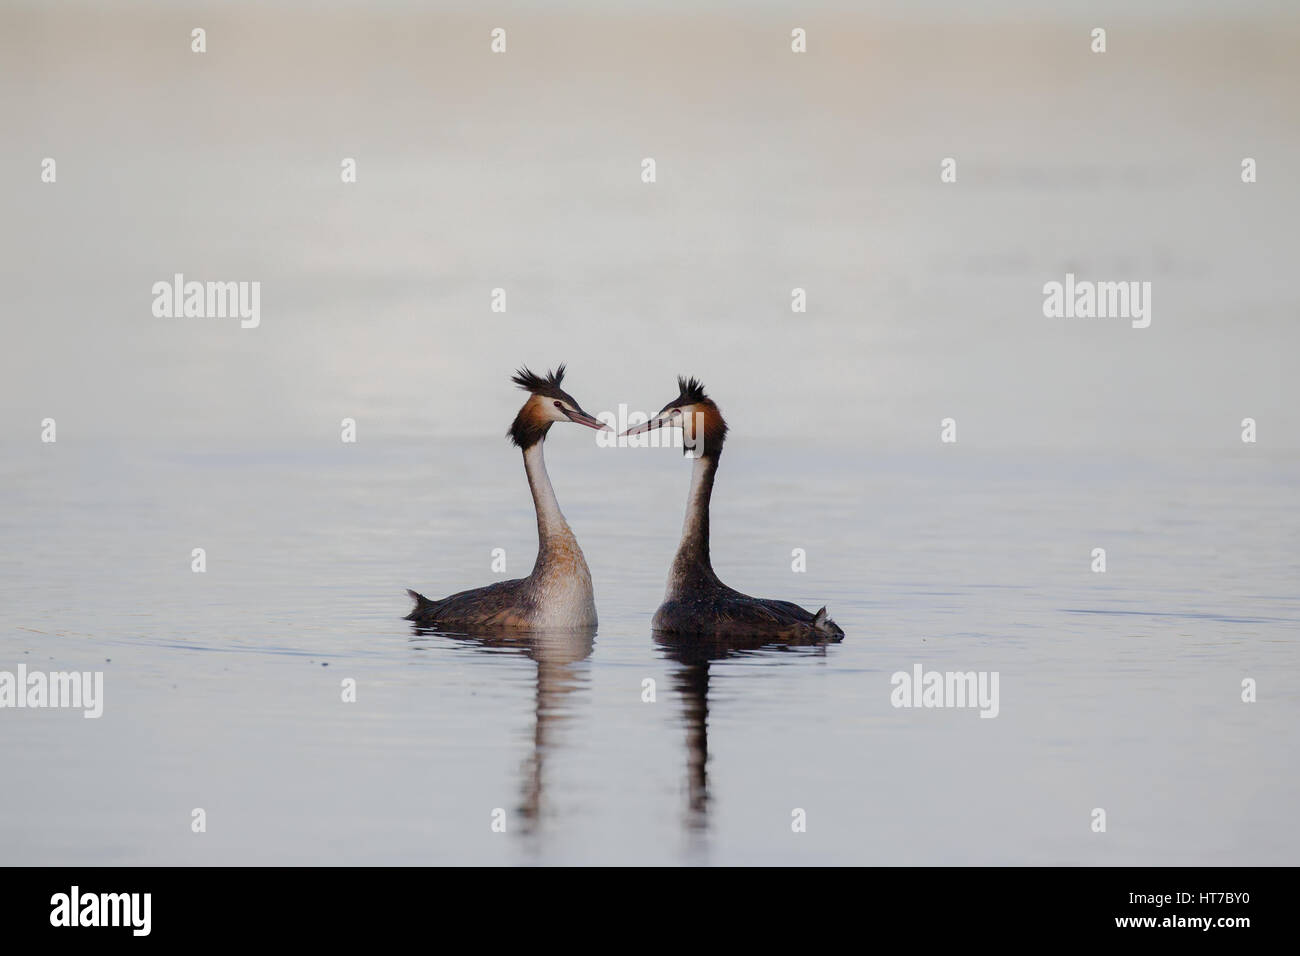 Great Crested Grebes CourtingStock Photo